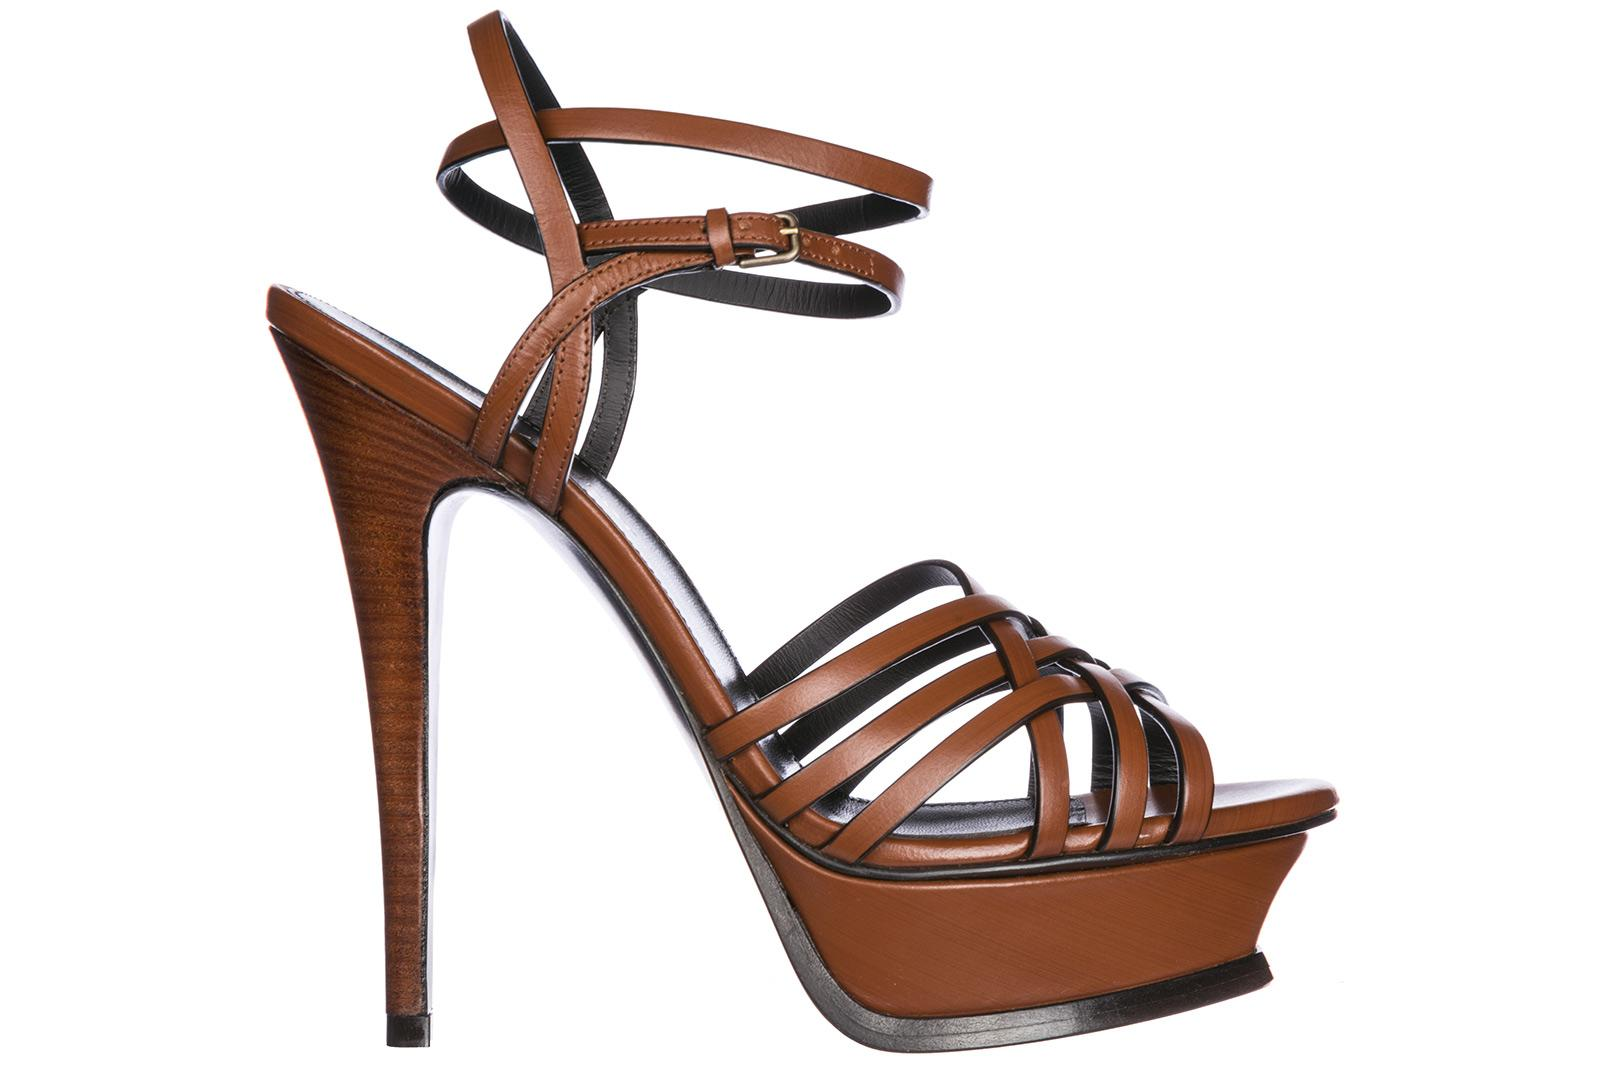 Saint Laurent Women's Leather Heel Sandals Tribute 105 In Brown